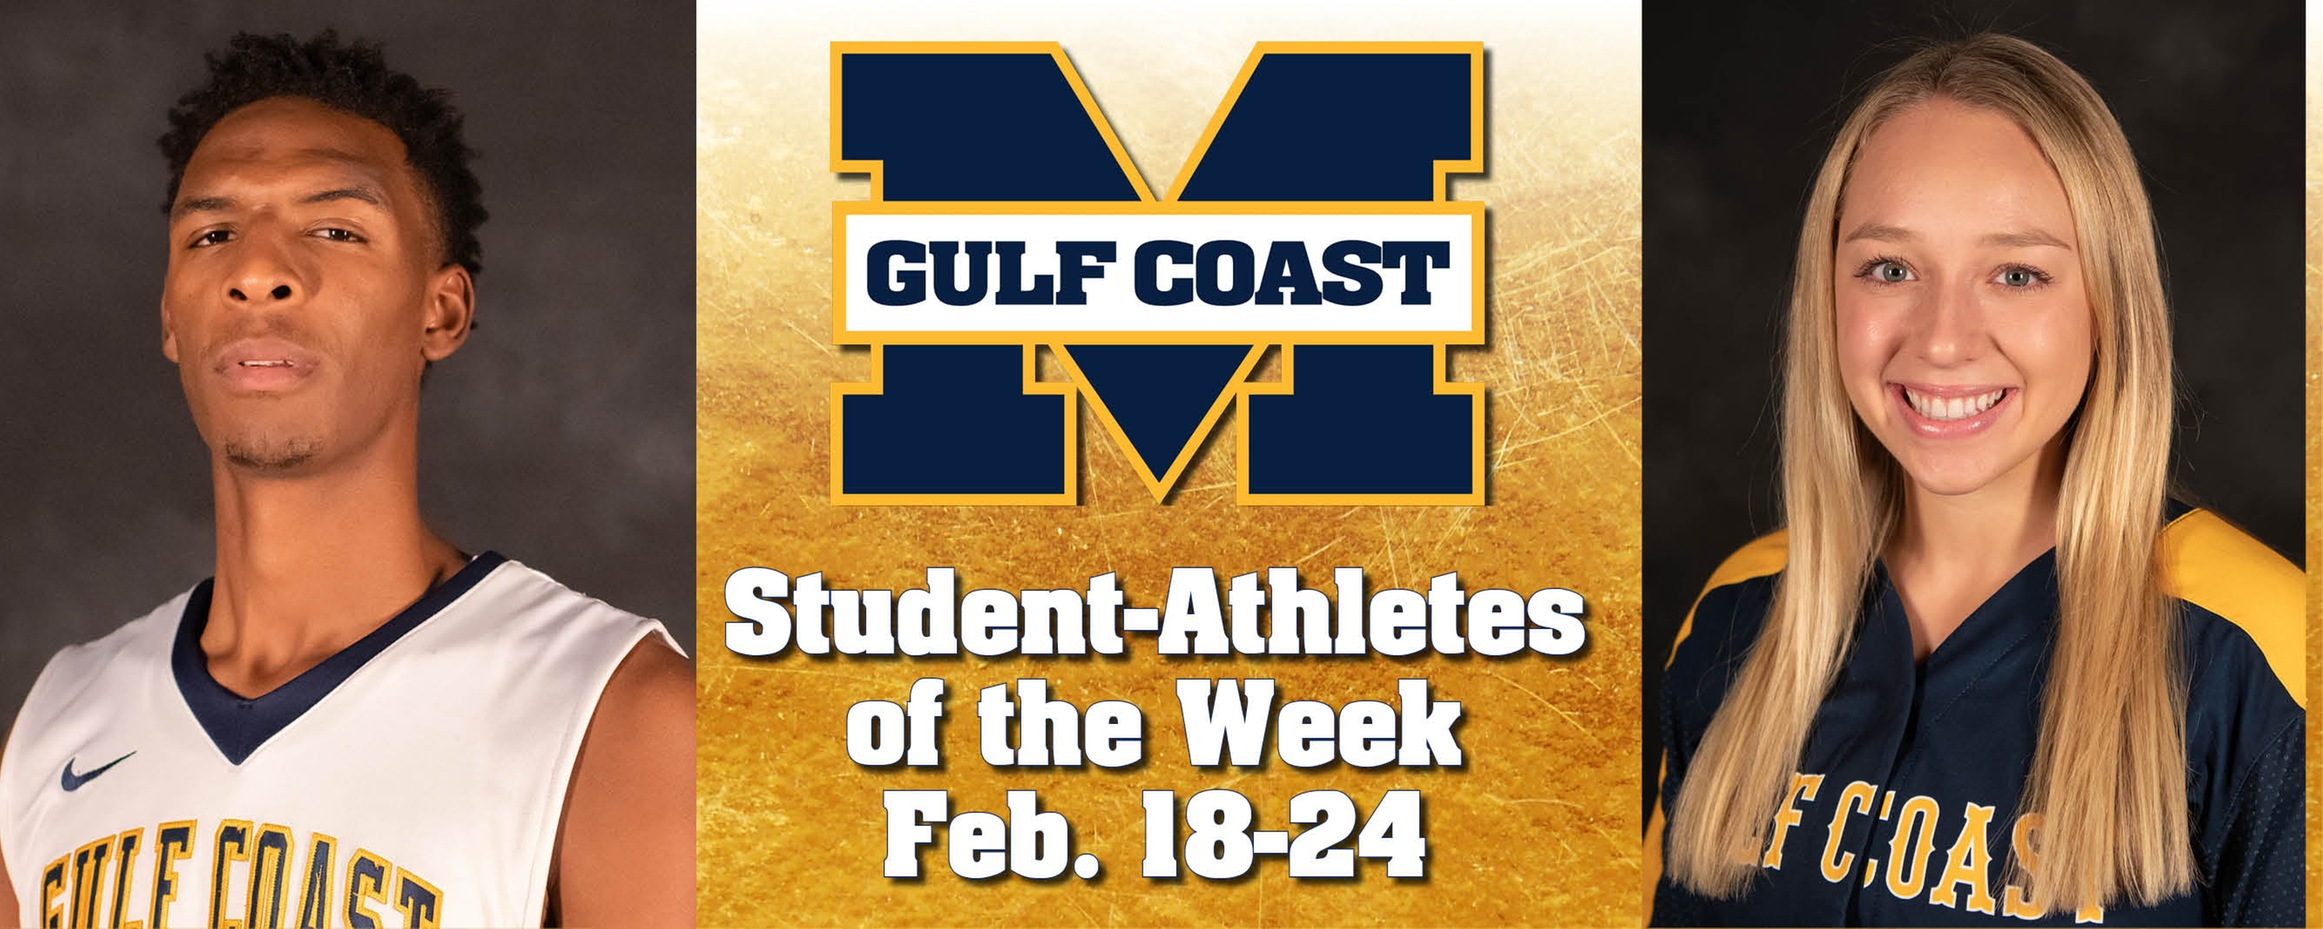 Moorer, Sanders named MGCCC Student-Athletes of the Week